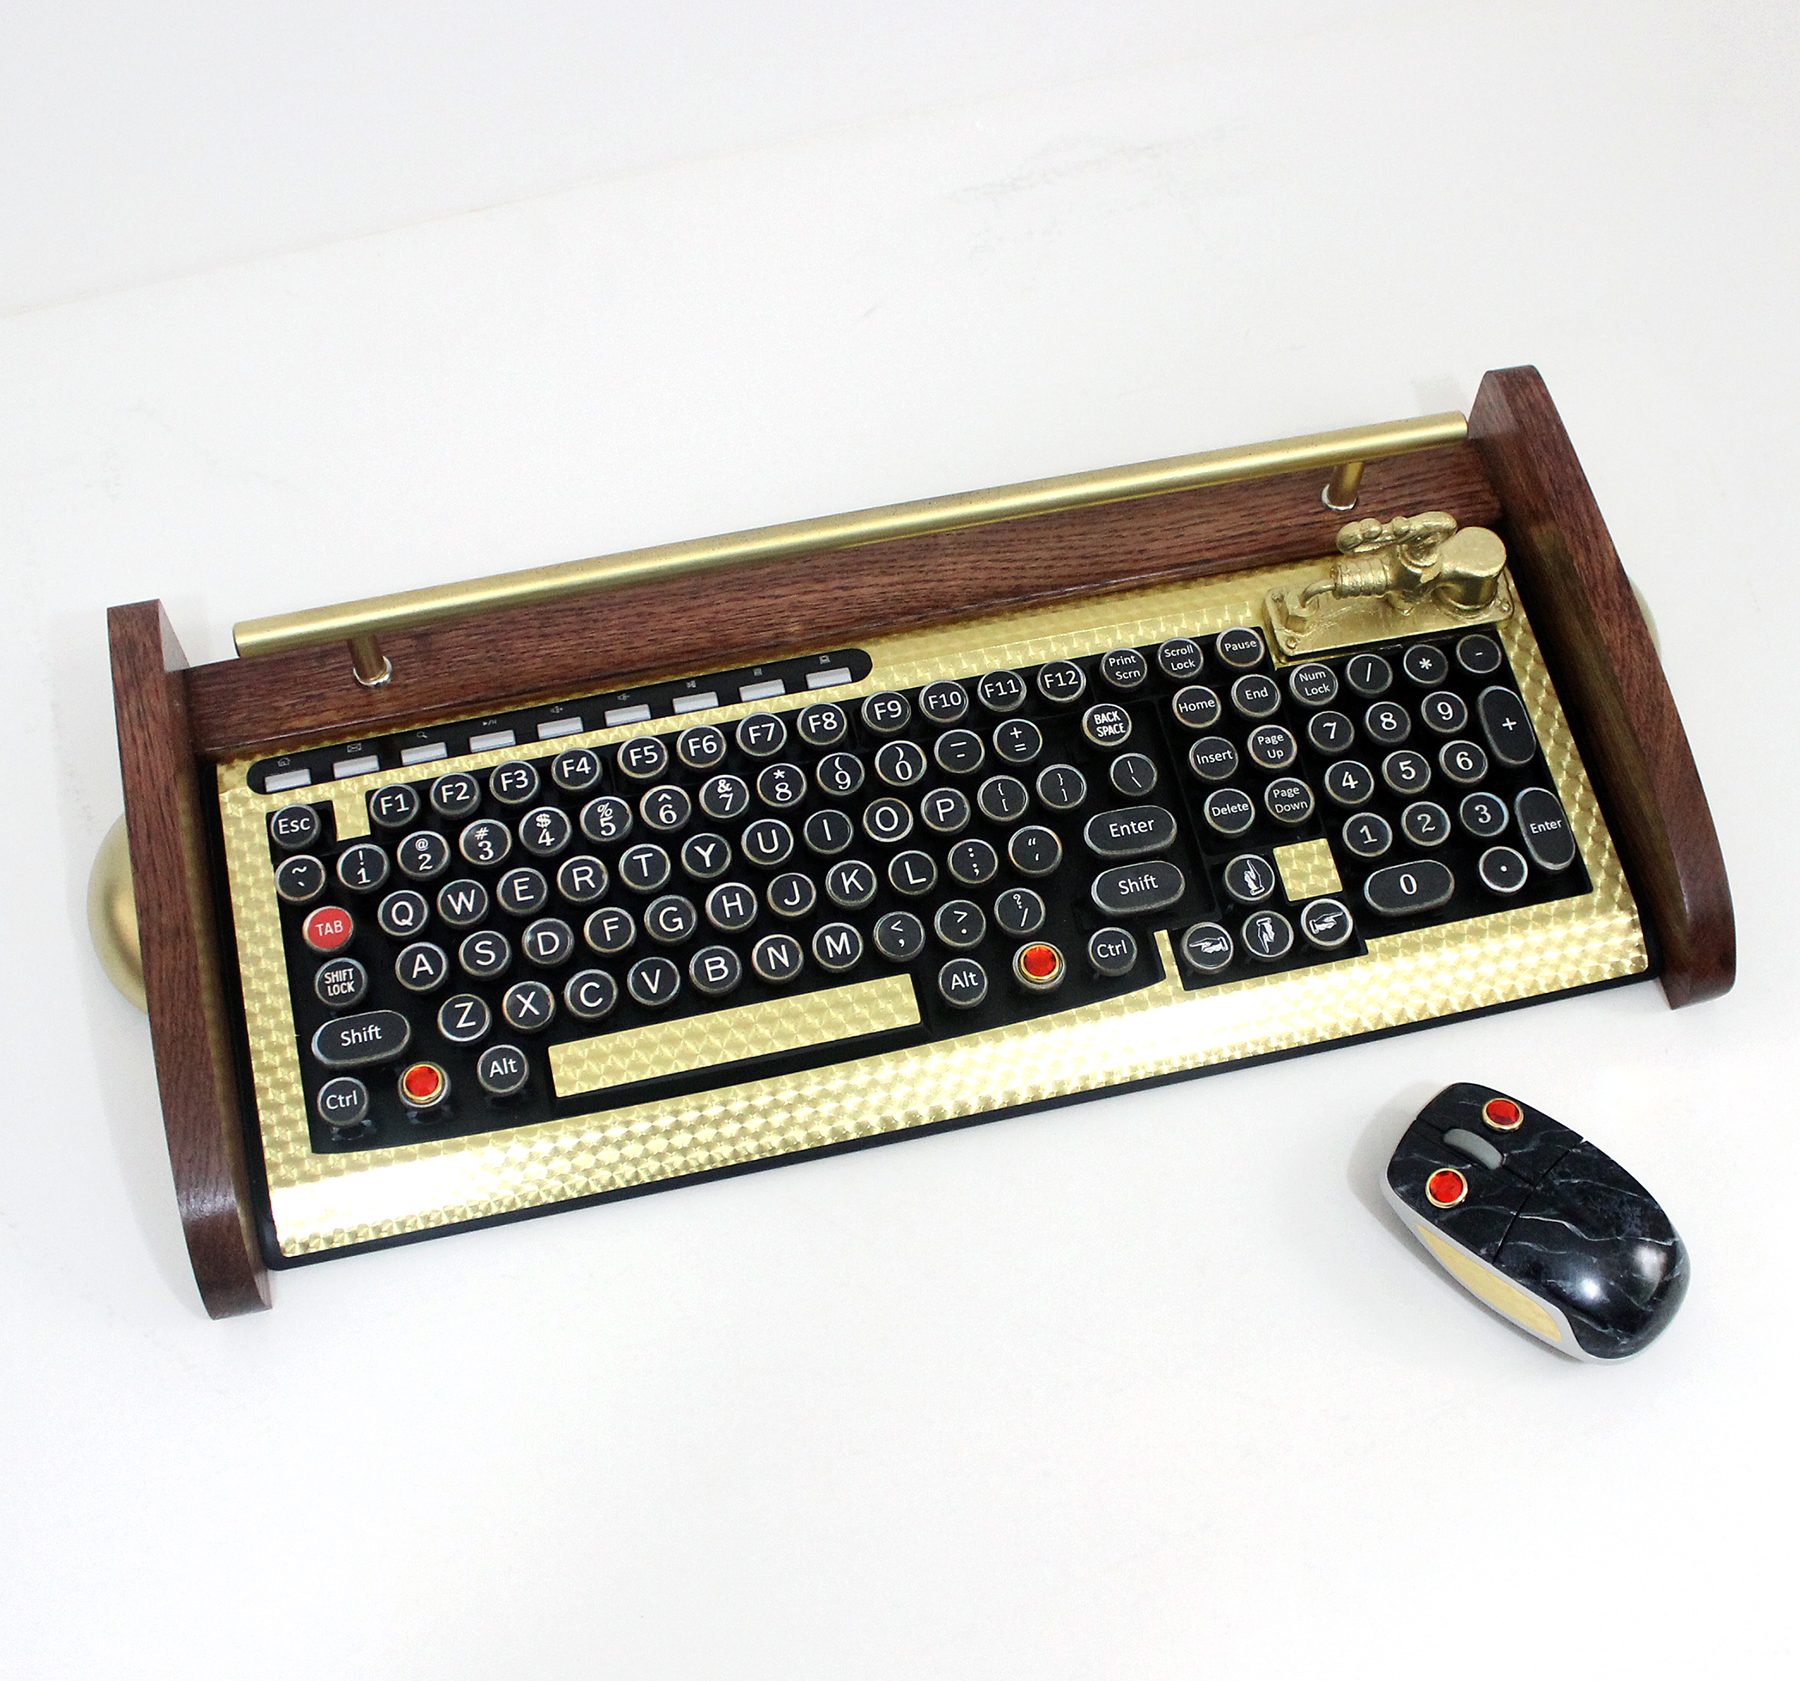 Keyboard Mouse Combo - Antique looking Victorian Styling -  Steampunk-Typewriter-Gold 2 from idockit